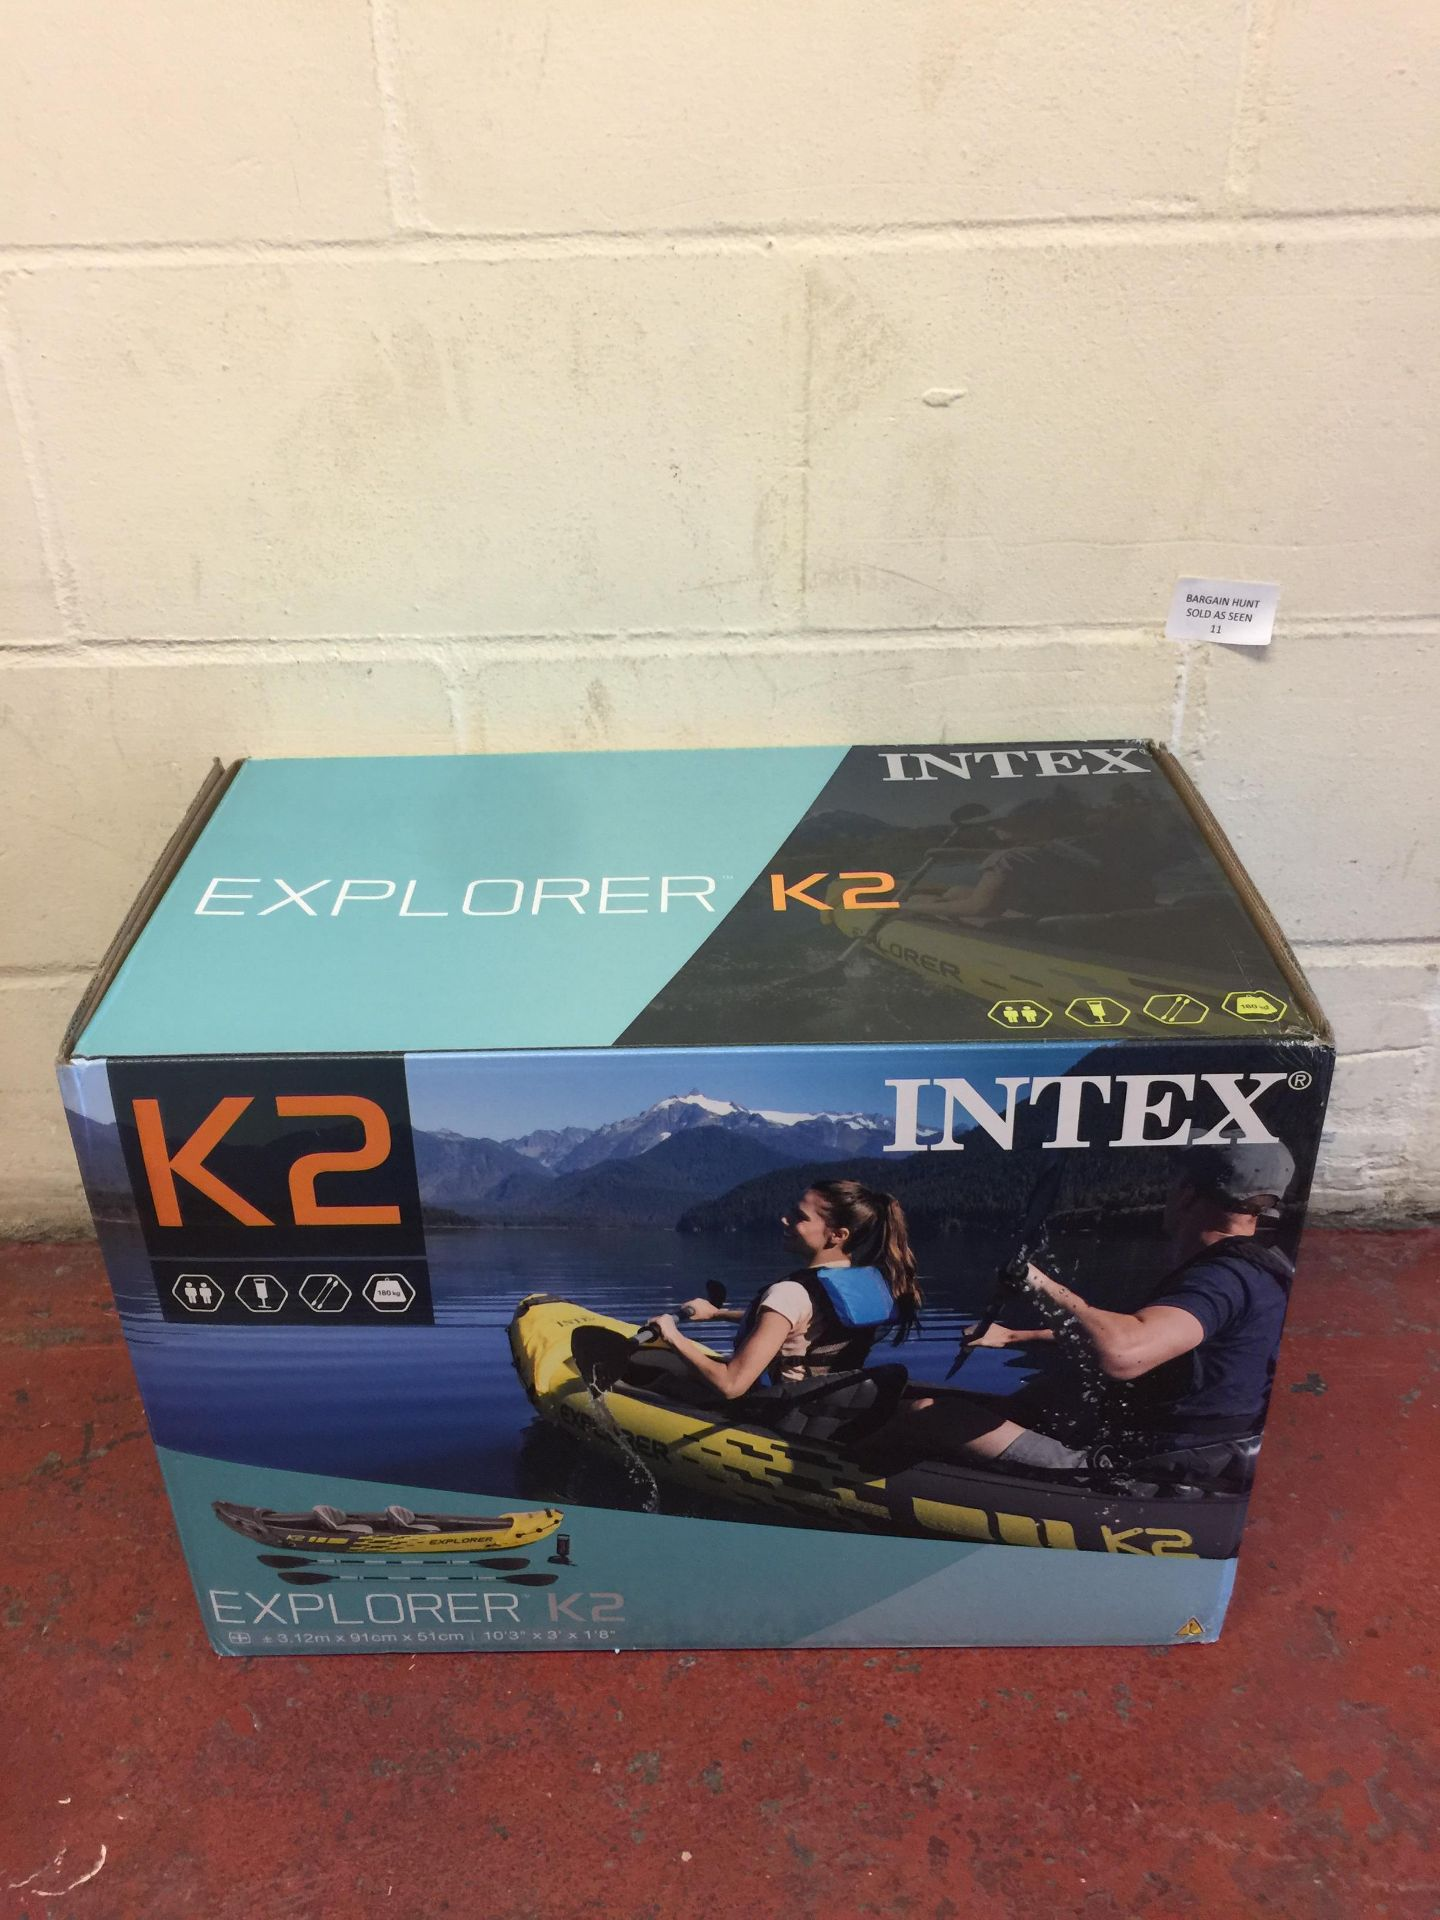 Lot 11 - Intex Explorer K2 Two-Person Kayak RRP £86.99